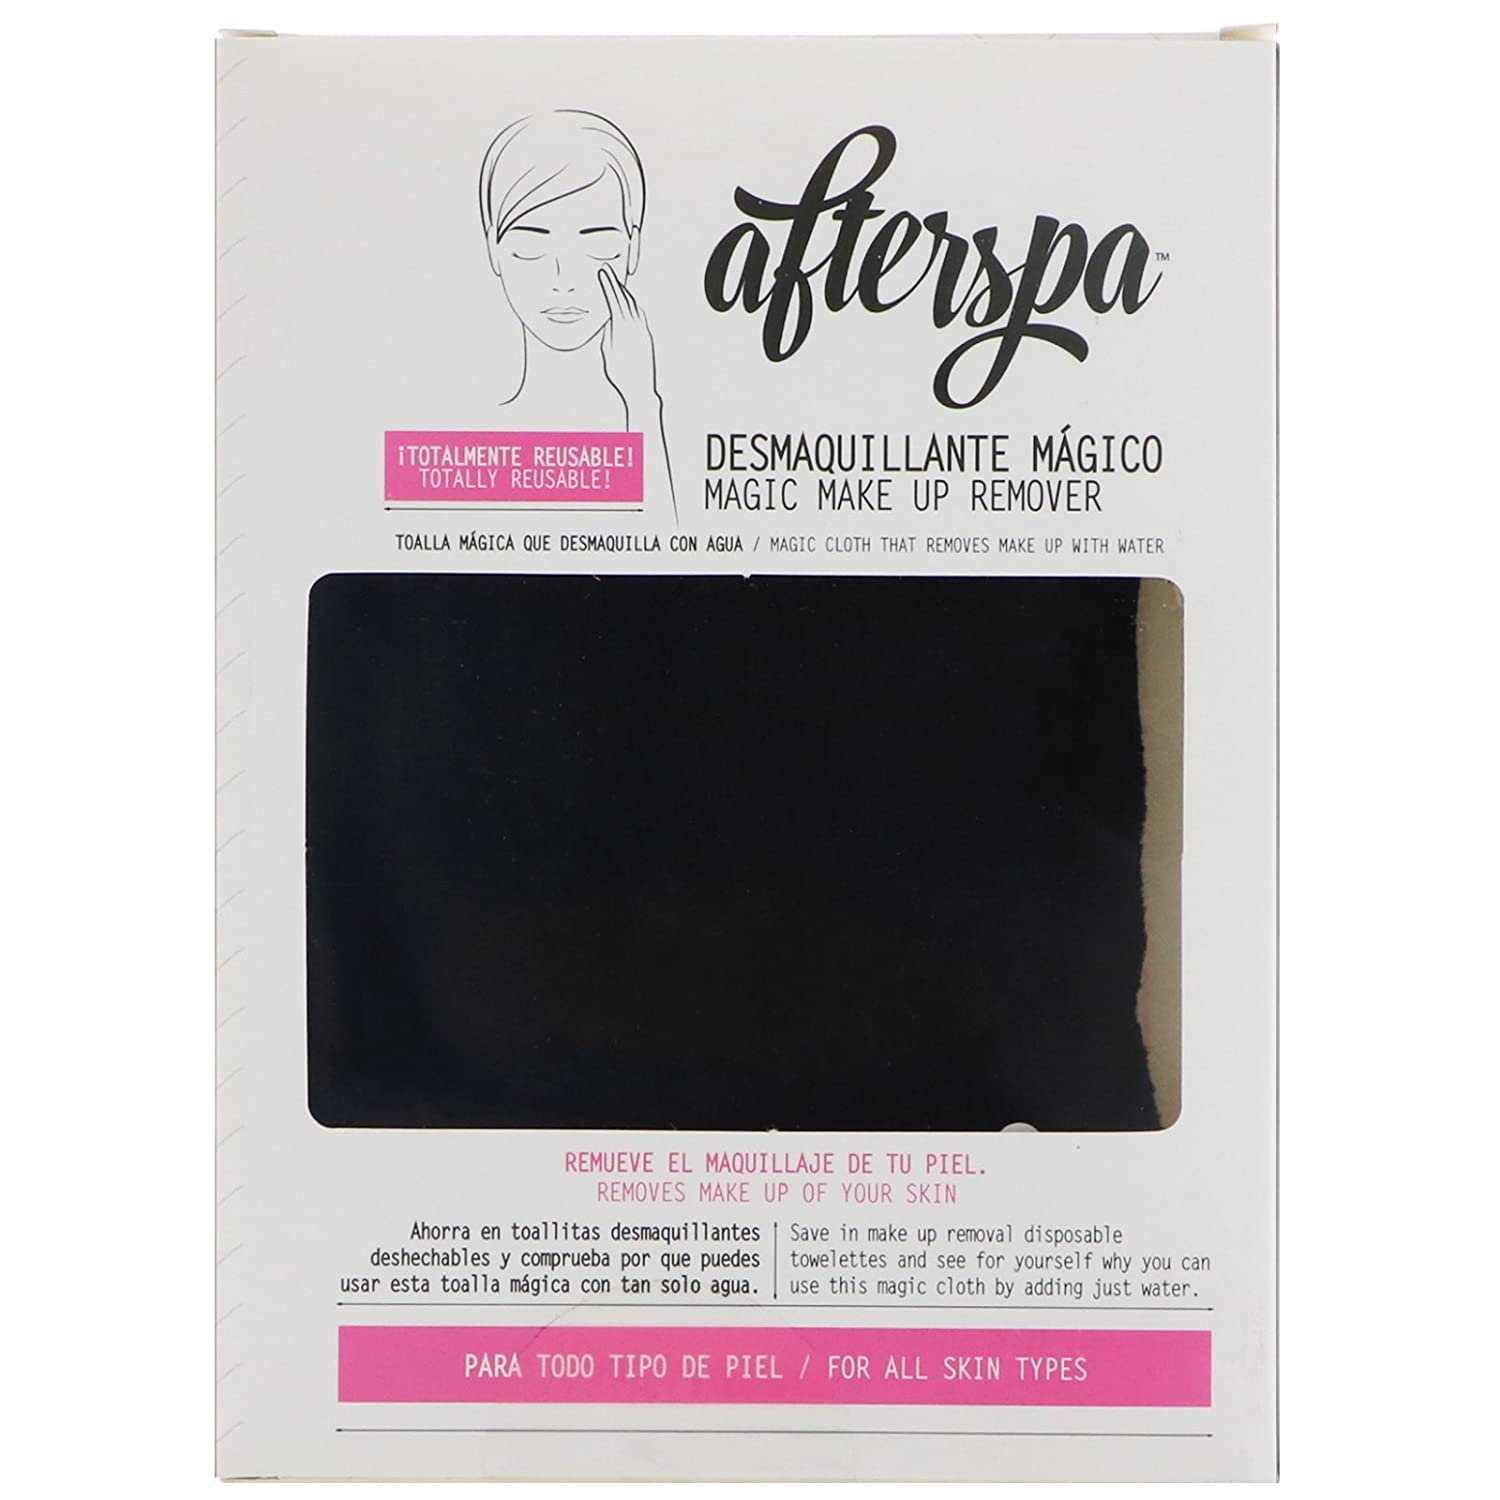 Amazon.com : AfterSpa Magic Make Up Remover Reusable Cloth Black 1 Cloth : Beauty